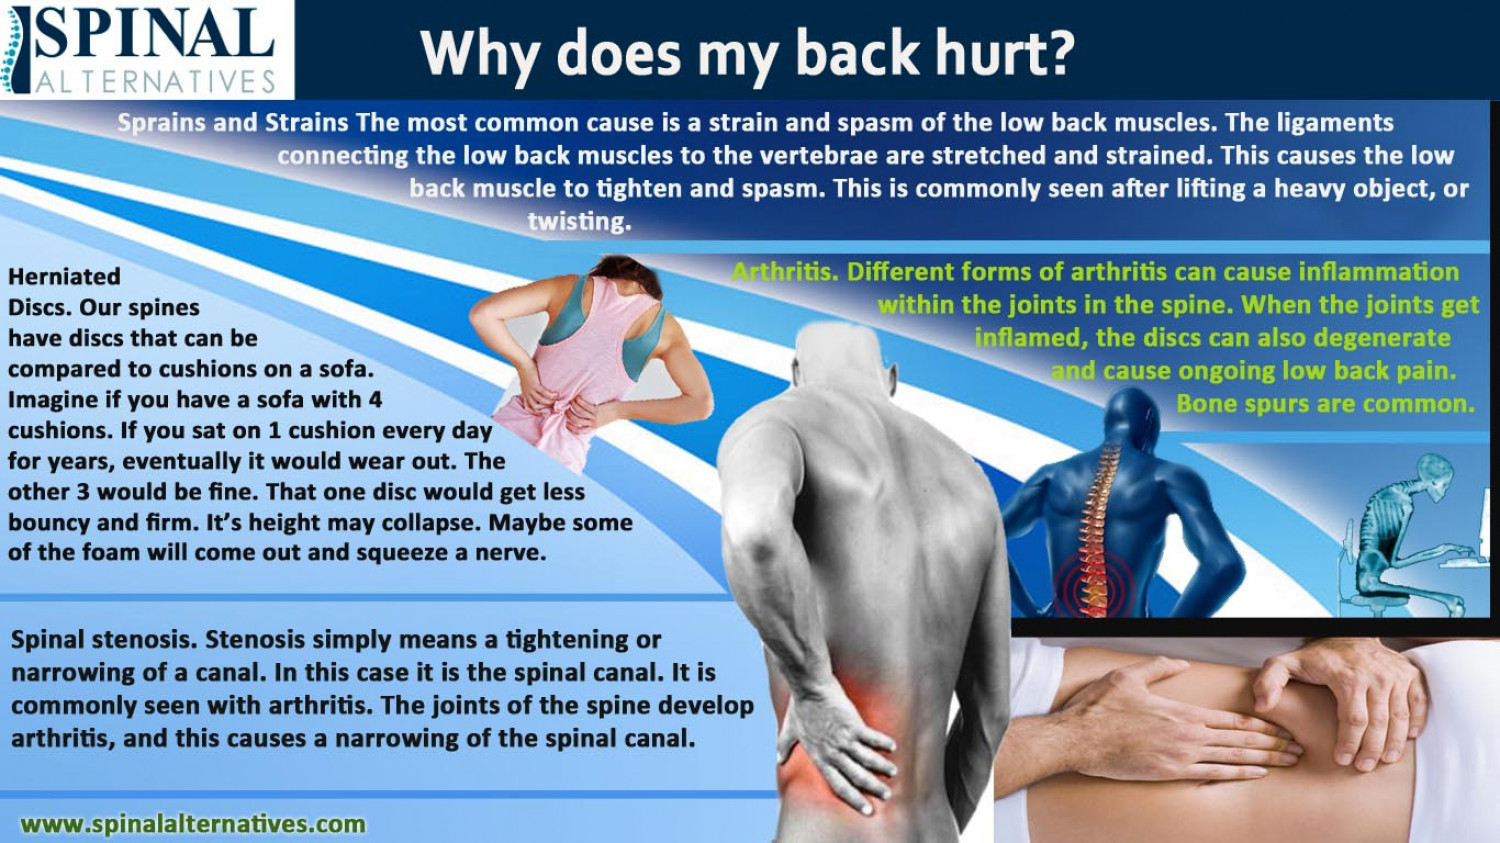 Spinal Alternatives - Why Does My Back Hurt? Infographic